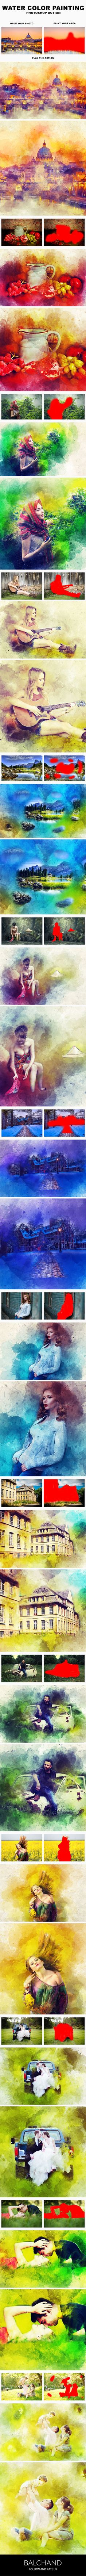 Water Color Painting Photoshop Action This action is thoroughly tested across between 50 – 150 different photos to ensure there are no errors. In the case where you do experience an error, please contact me via email if you are still having troubles. Then I will solve your error quickly.